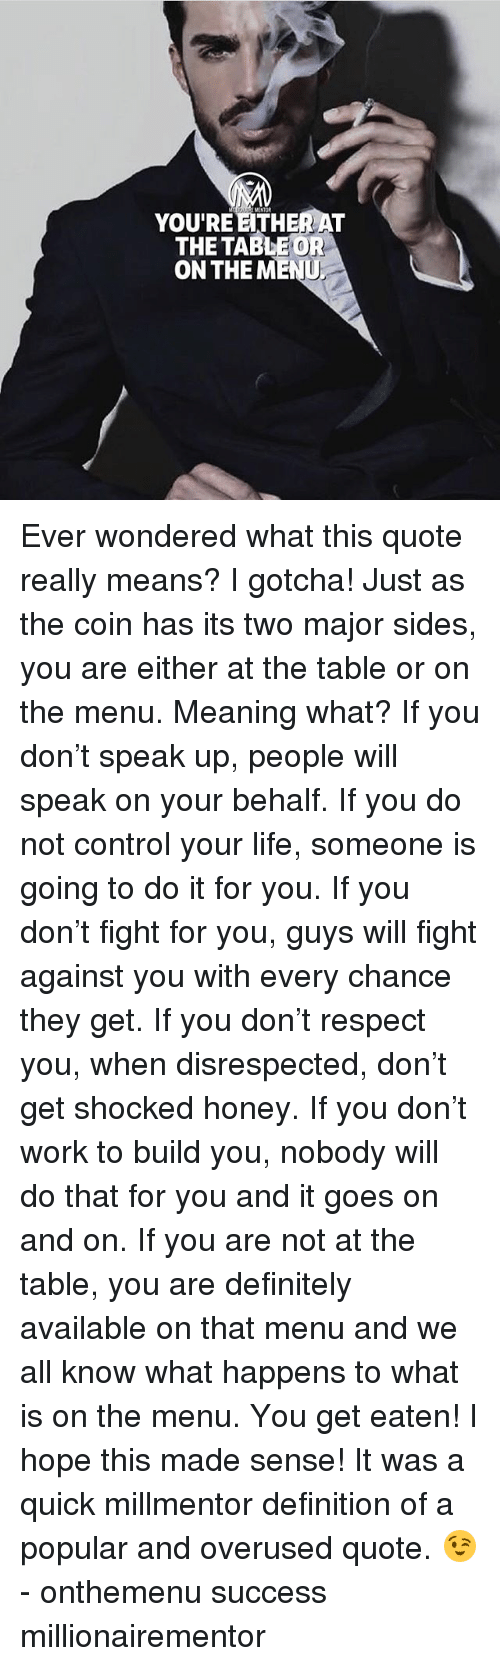 On The Menu: YOU'RE ETHER AT  THETABLEOR  ON THE MENU Ever wondered what this quote really means? I gotcha! Just as the coin has its two major sides, you are either at the table or on the menu. Meaning what? If you don't speak up, people will speak on your behalf. If you do not control your life, someone is going to do it for you. If you don't fight for you, guys will fight against you with every chance they get. If you don't respect you, when disrespected, don't get shocked honey. If you don't work to build you, nobody will do that for you and it goes on and on. If you are not at the table, you are definitely available on that menu and we all know what happens to what is on the menu. You get eaten! I hope this made sense! It was a quick millmentor definition of a popular and overused quote. 😉 - onthemenu success millionairementor